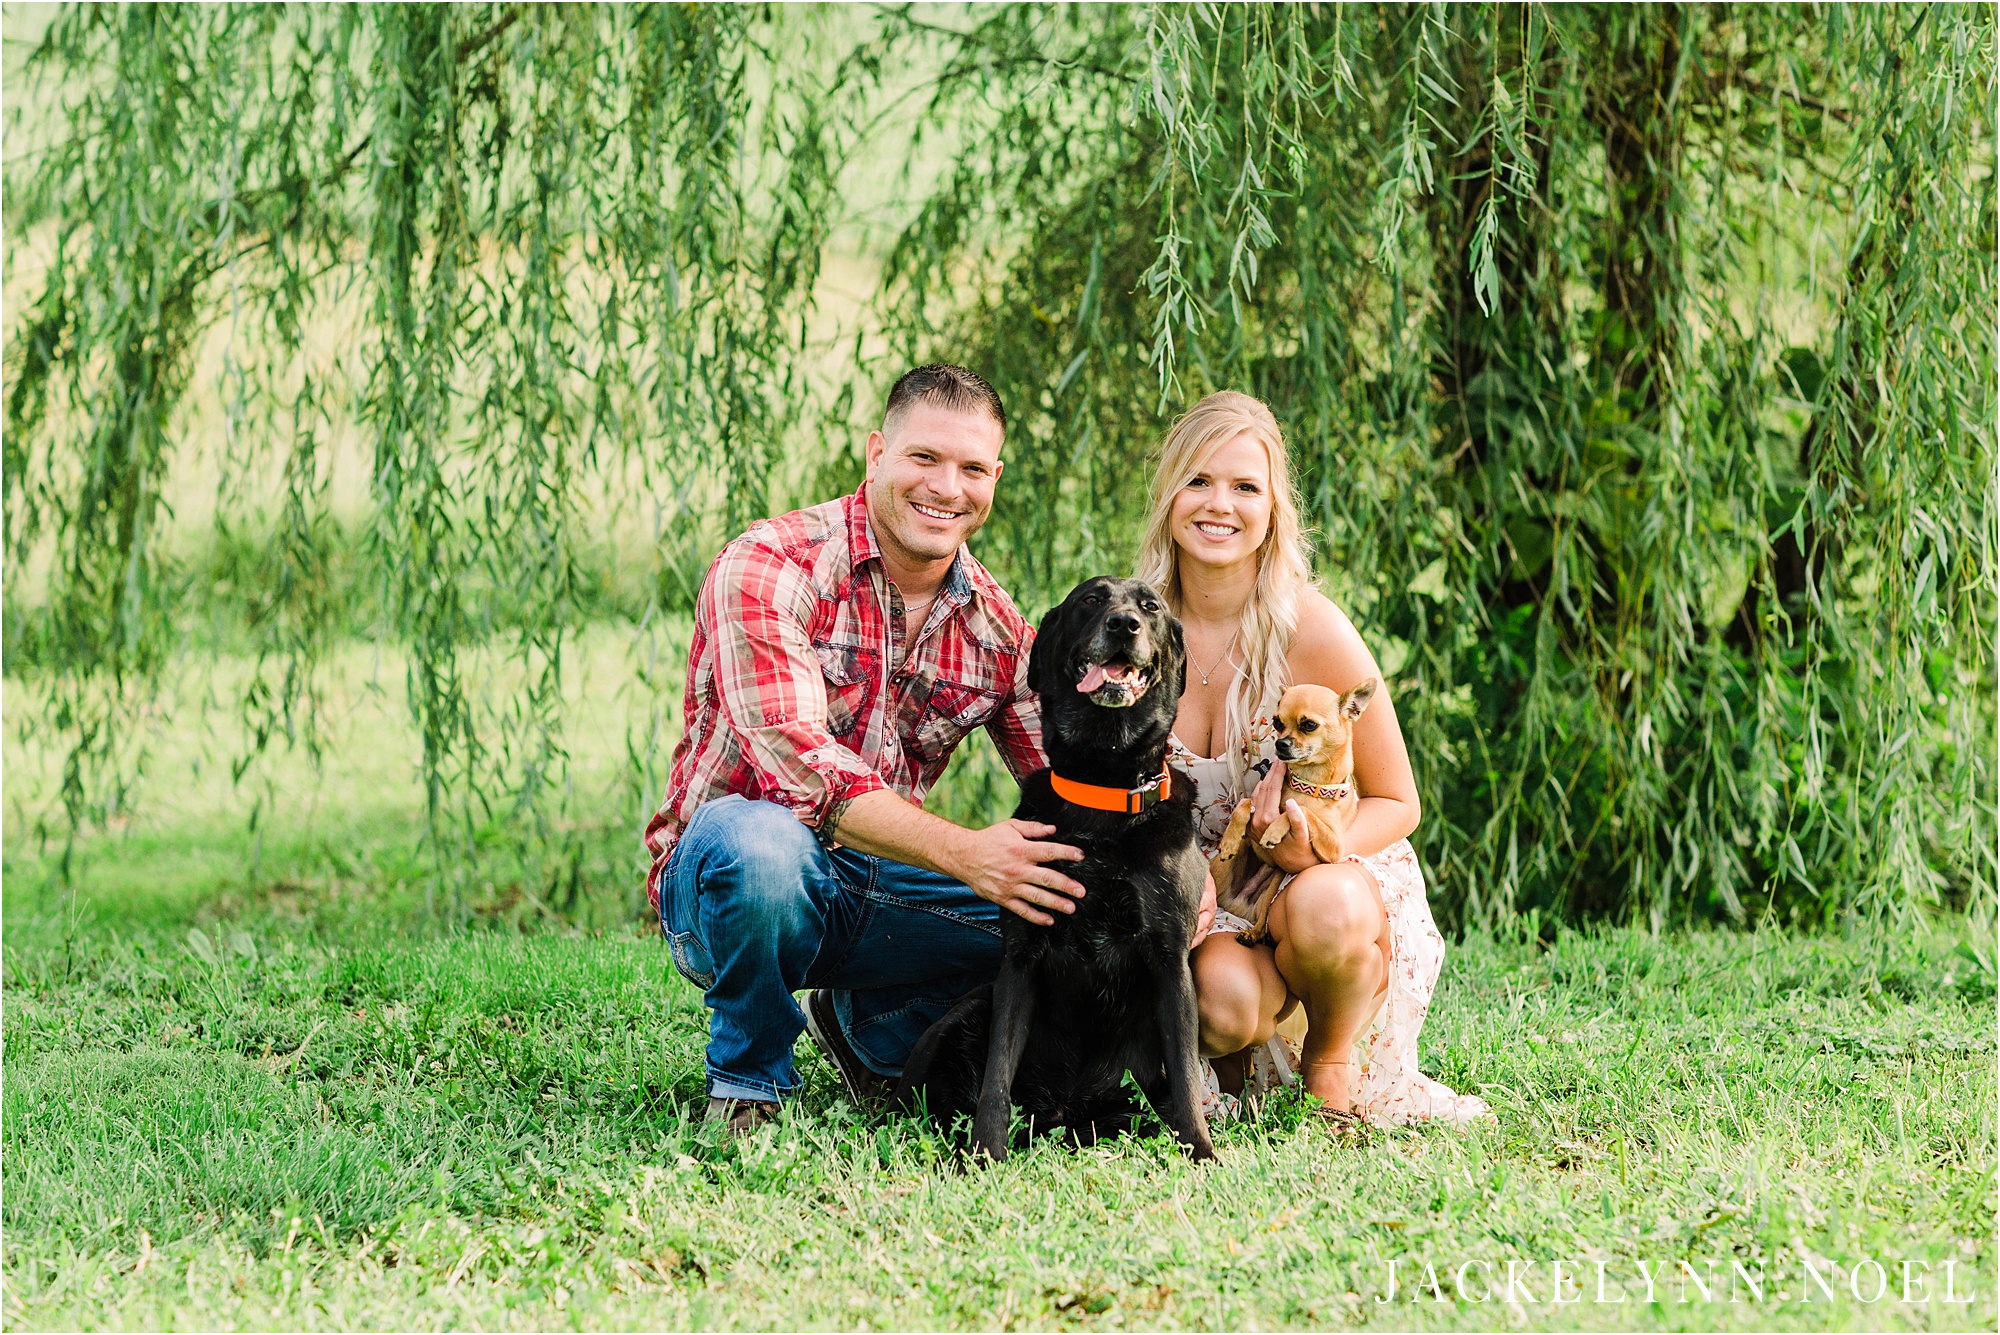 Megan and Rob - Hometown Farm Engagement Session in Troy, Illinois by Jackelynn Noel Photography